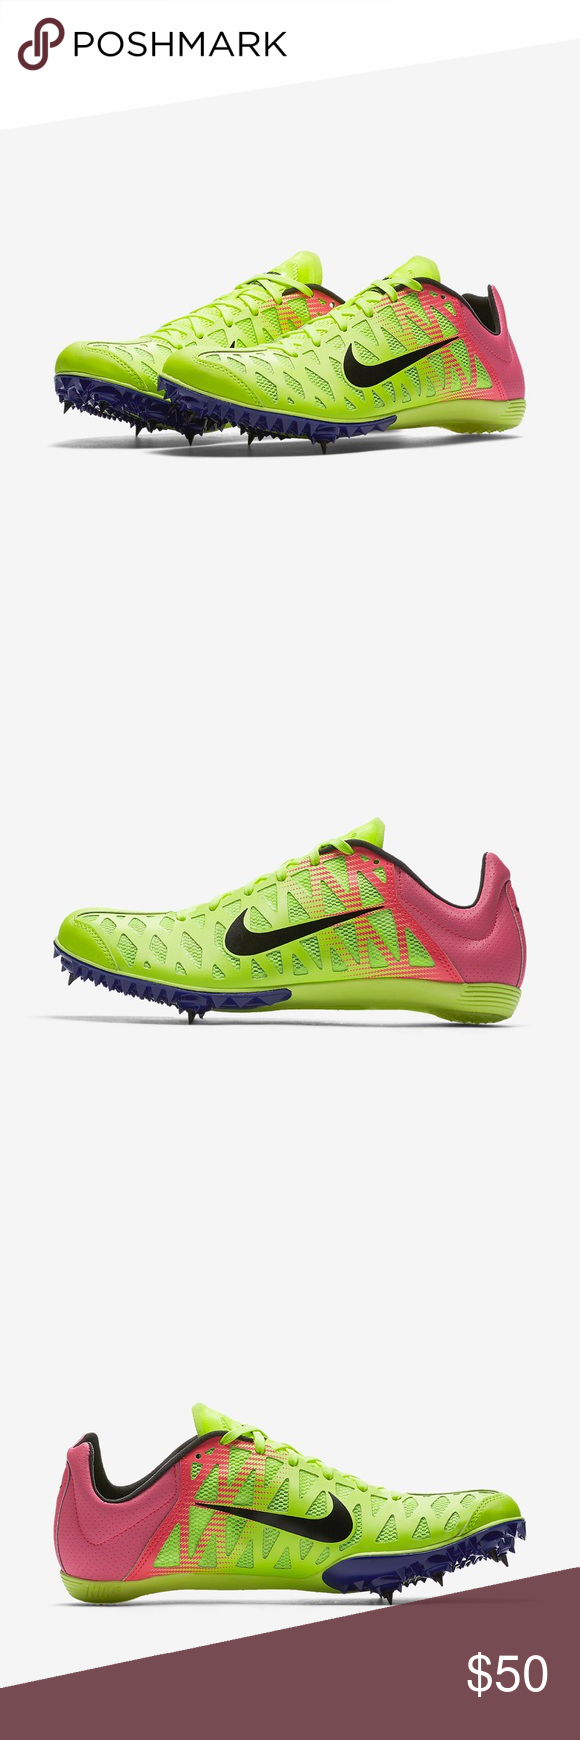 e2d06879dc6e Nike Zoom Maxcat 4 Rio OC Spikes Men s Sz 13 Nike Zoom Maxcat 4 Rio OC  Spikes Men s Size  13 Color  Volt Pink Black Blue Brand New It doesn t come  with the ...